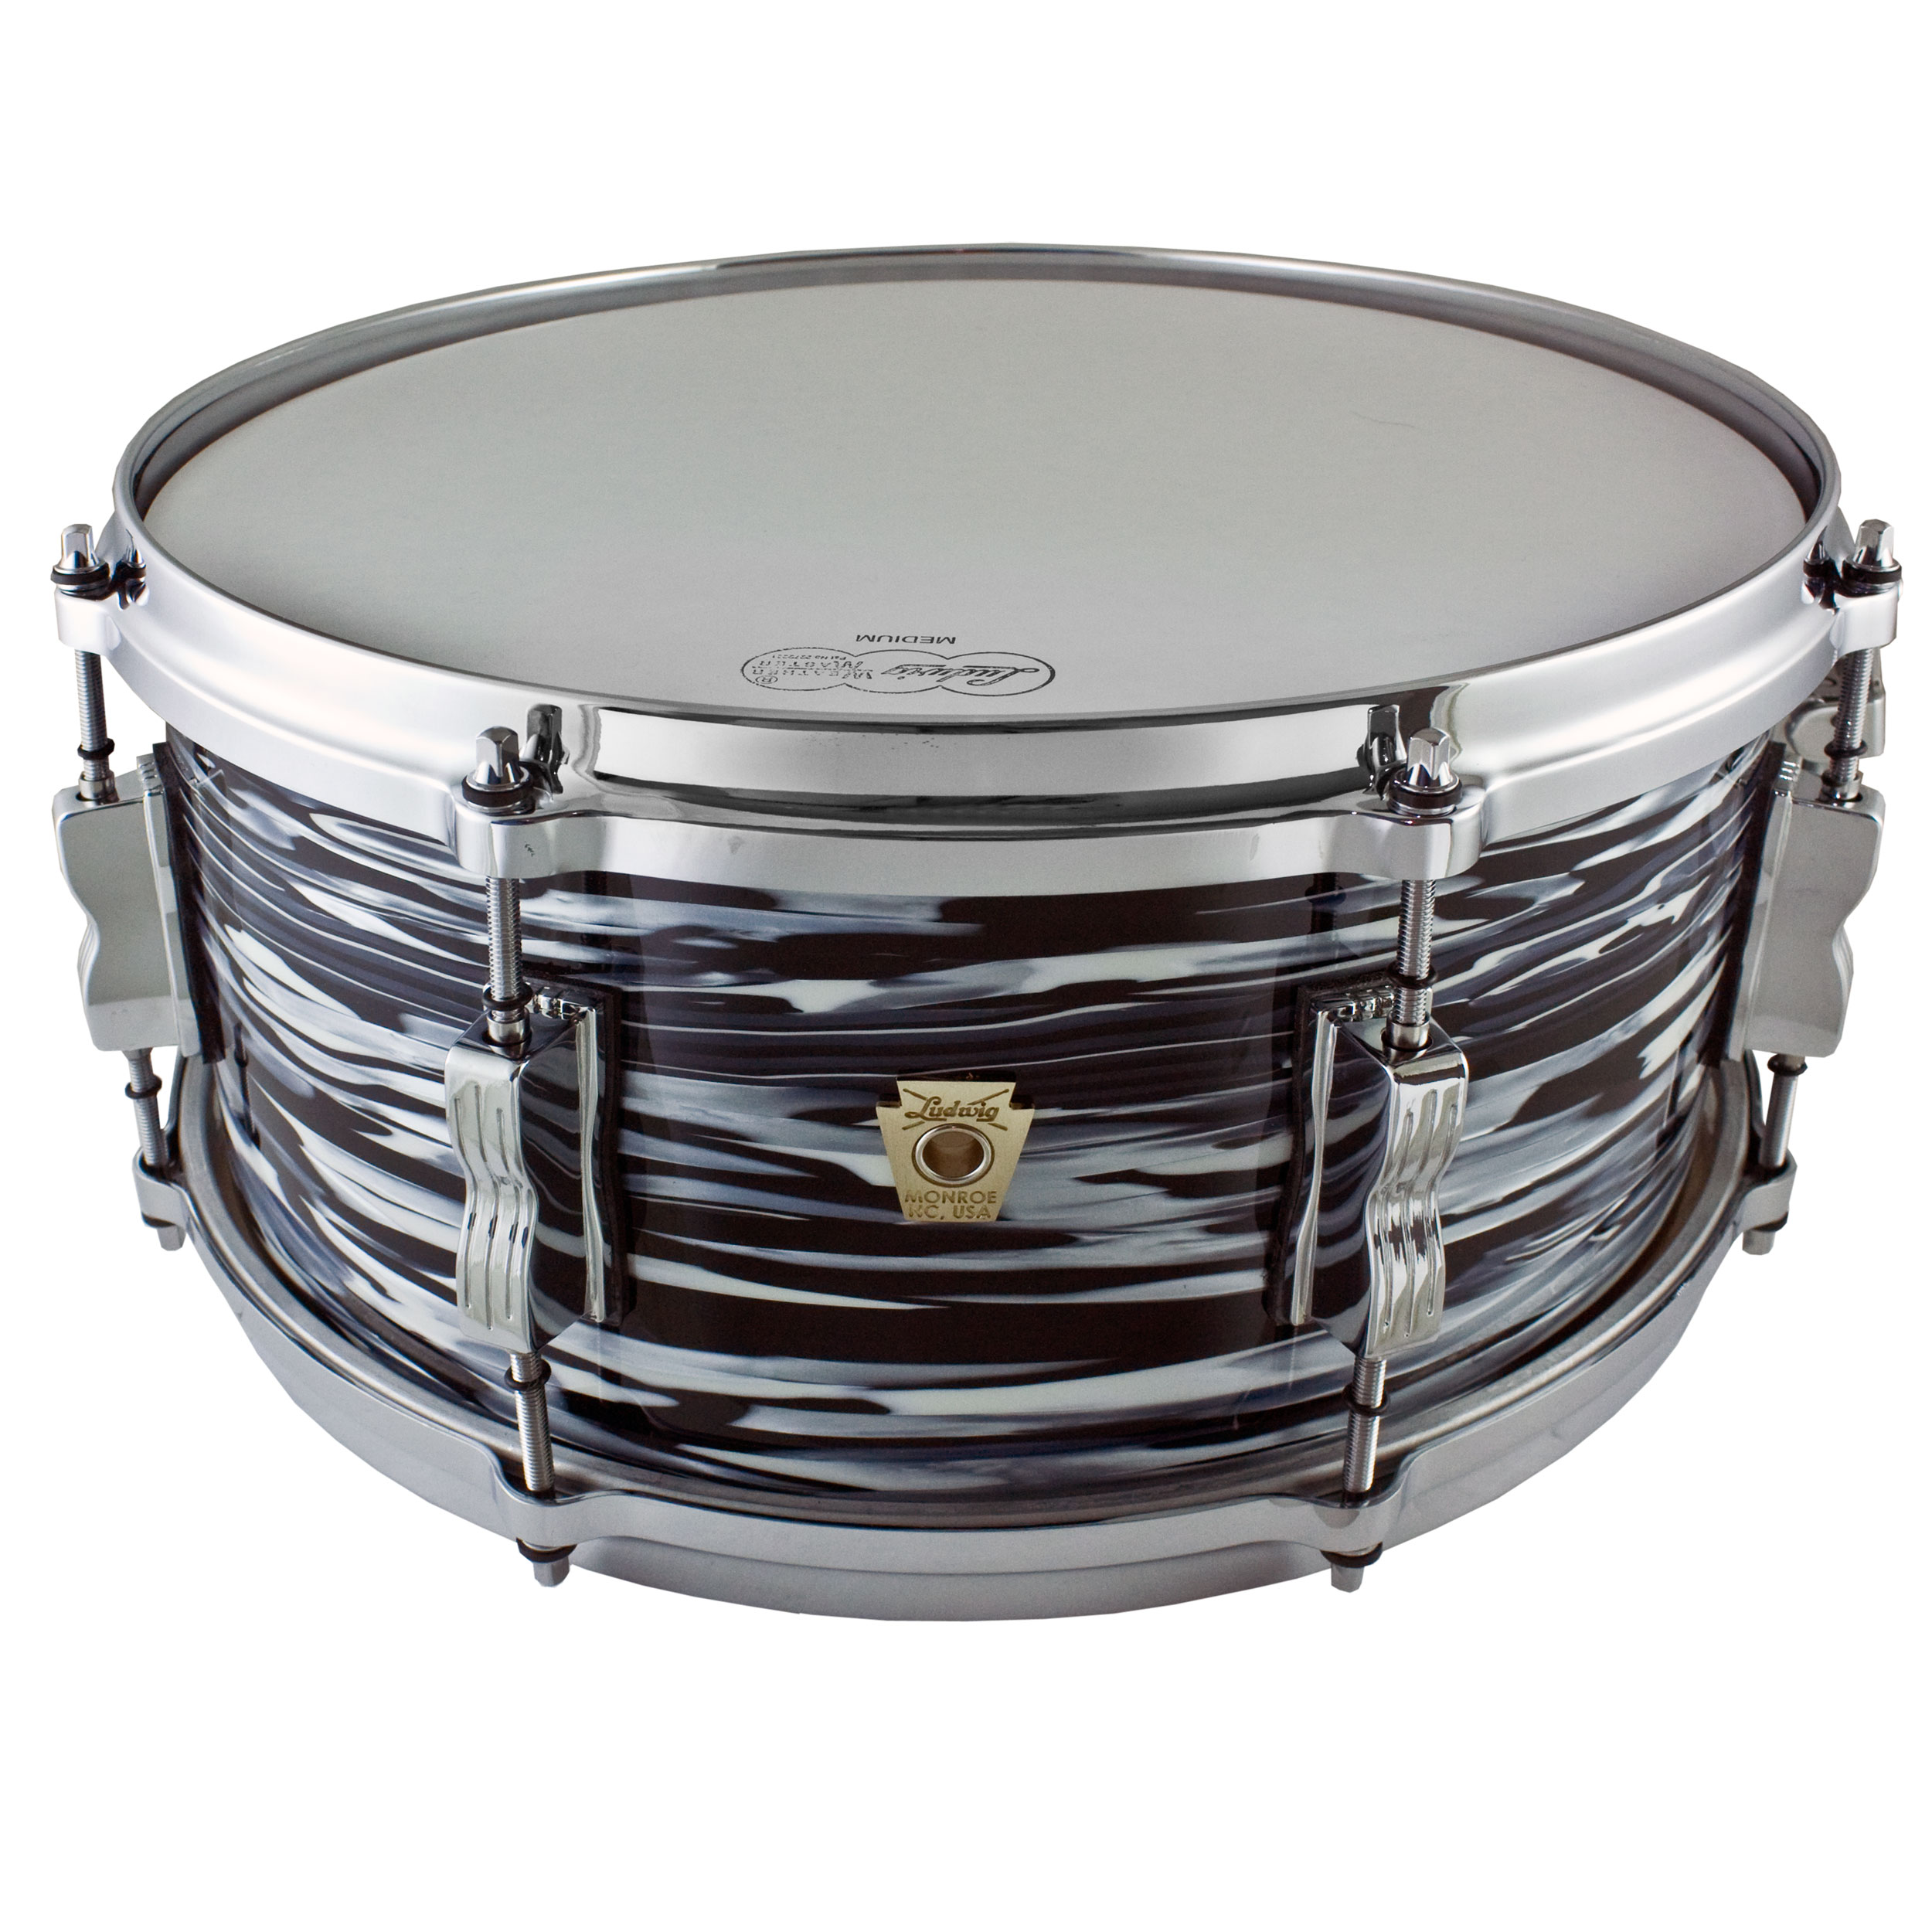 """Ludwig 6.5"""" x 14"""" Classic Maple Snare Drum in Vintage Black Oyster"""